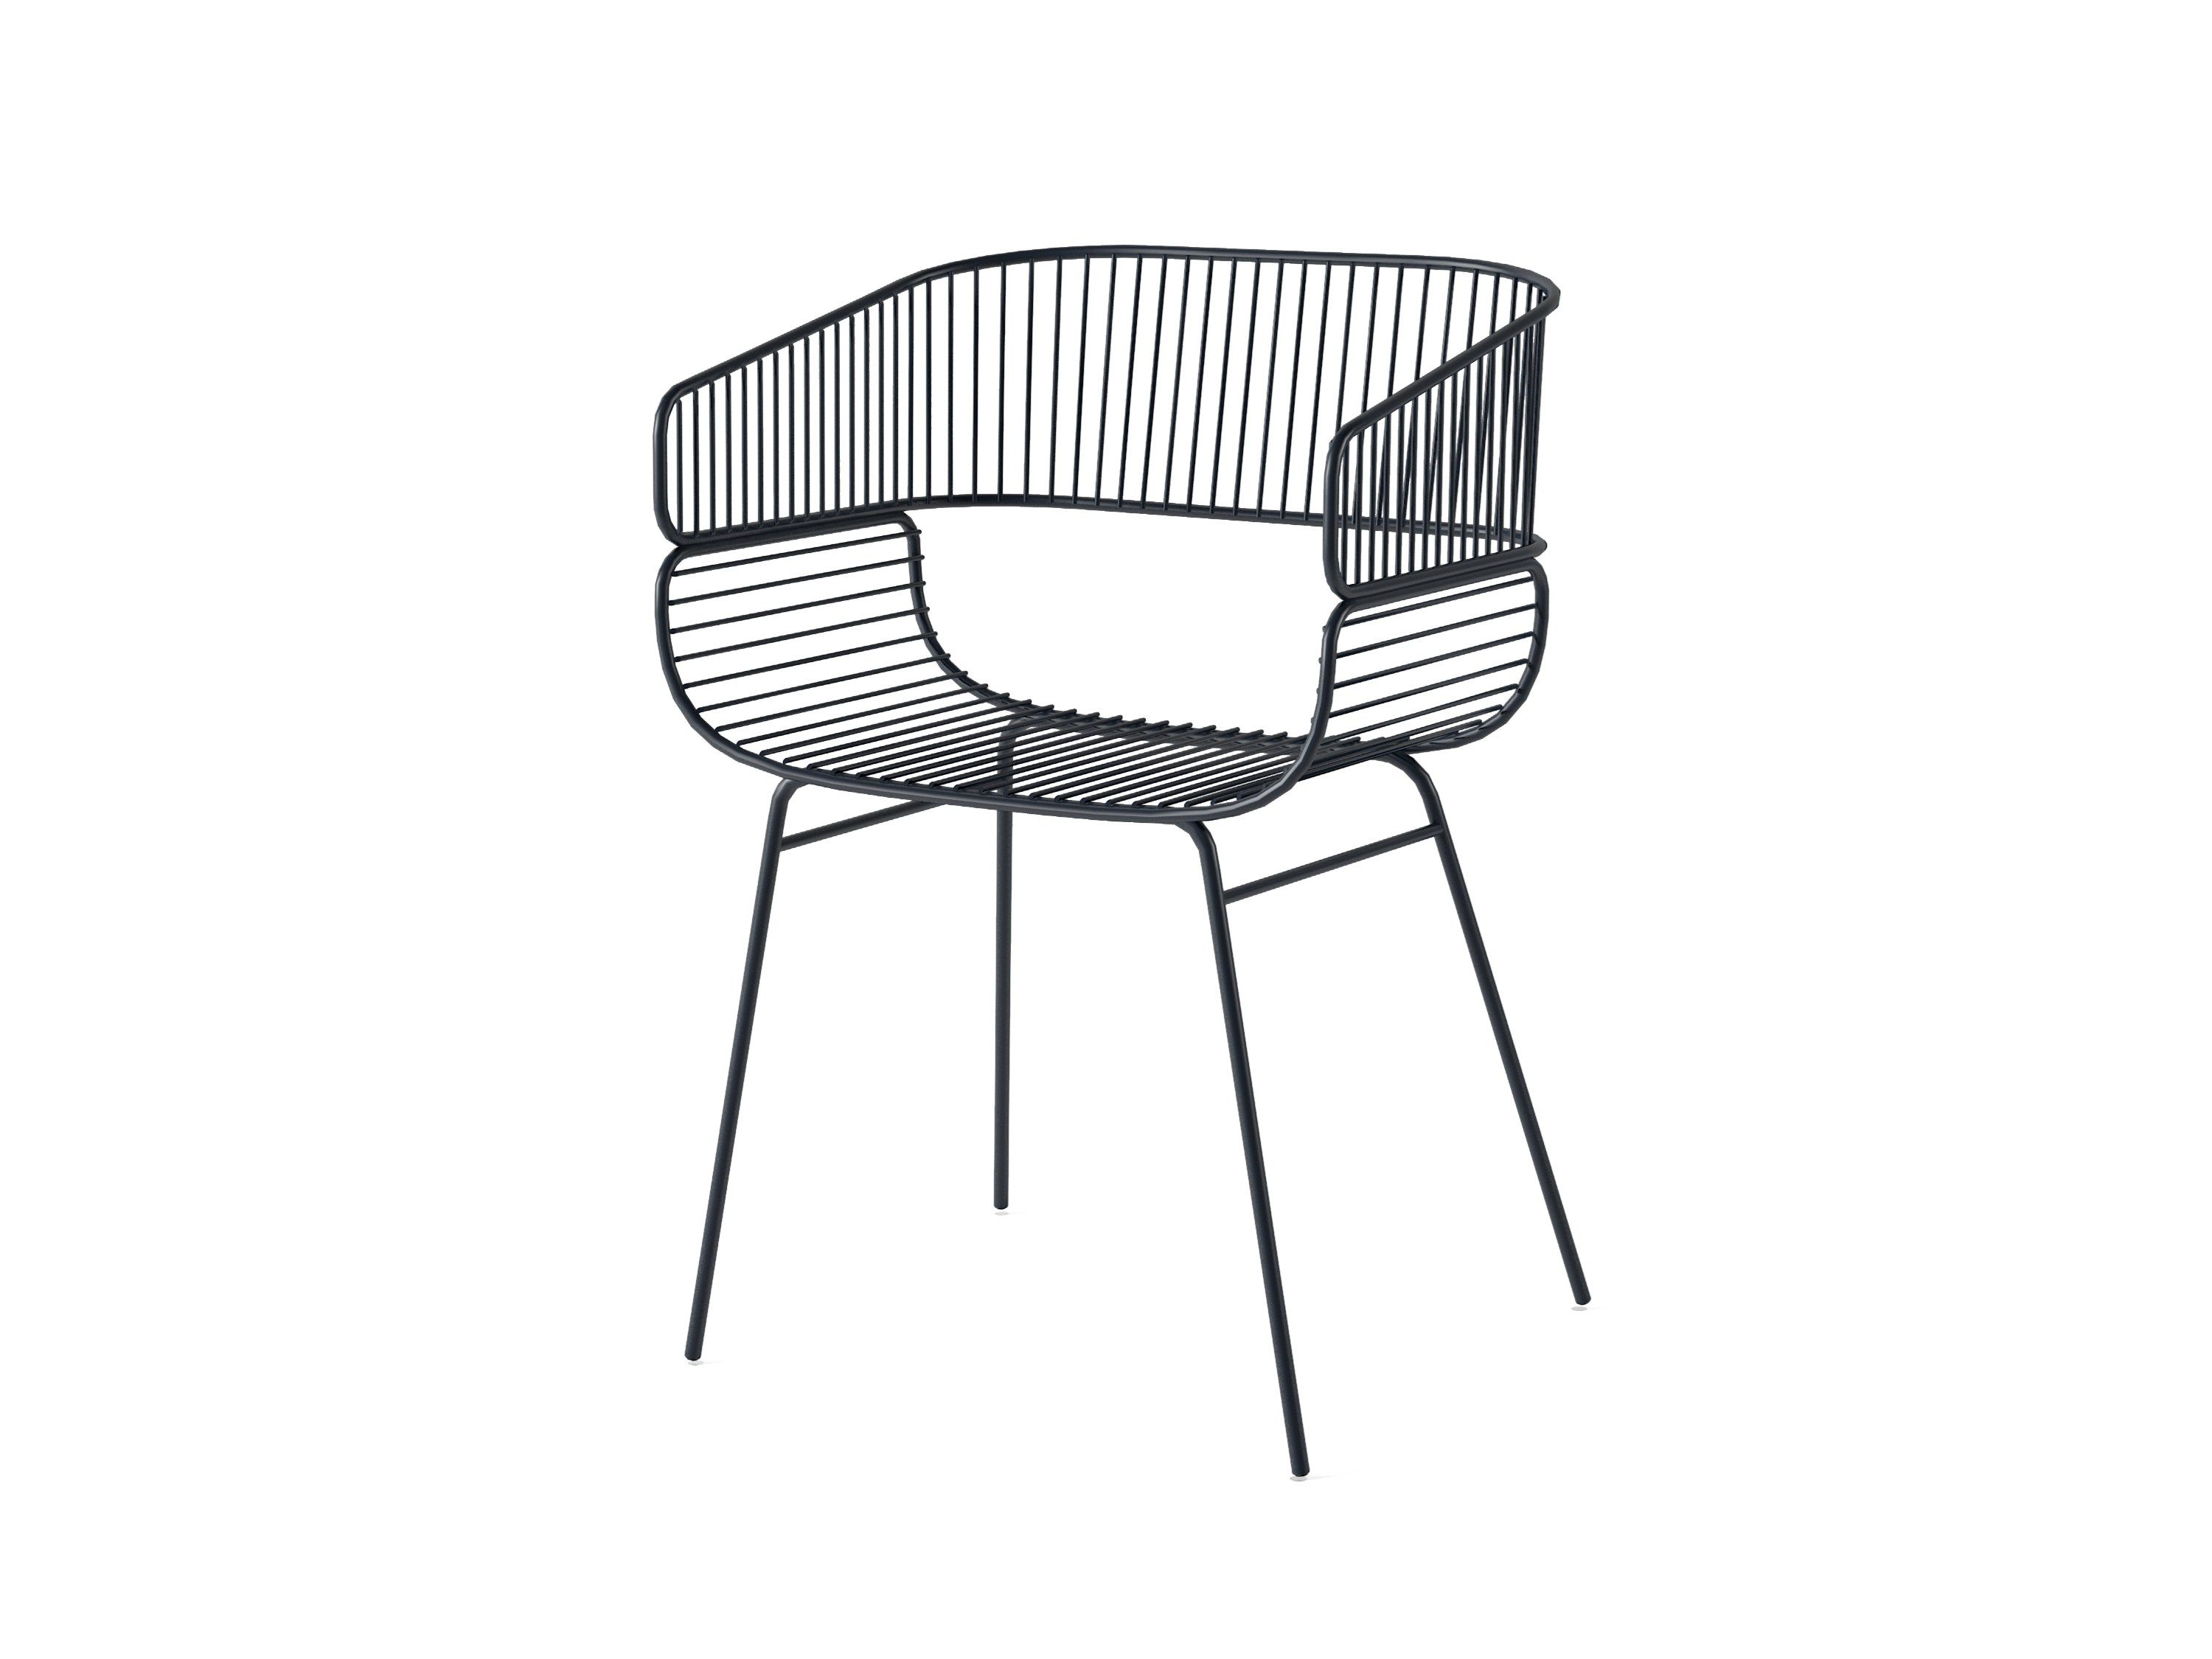 STEEL CHAIR WITH ARMRESTS TRAME BY PETITE FRITURE